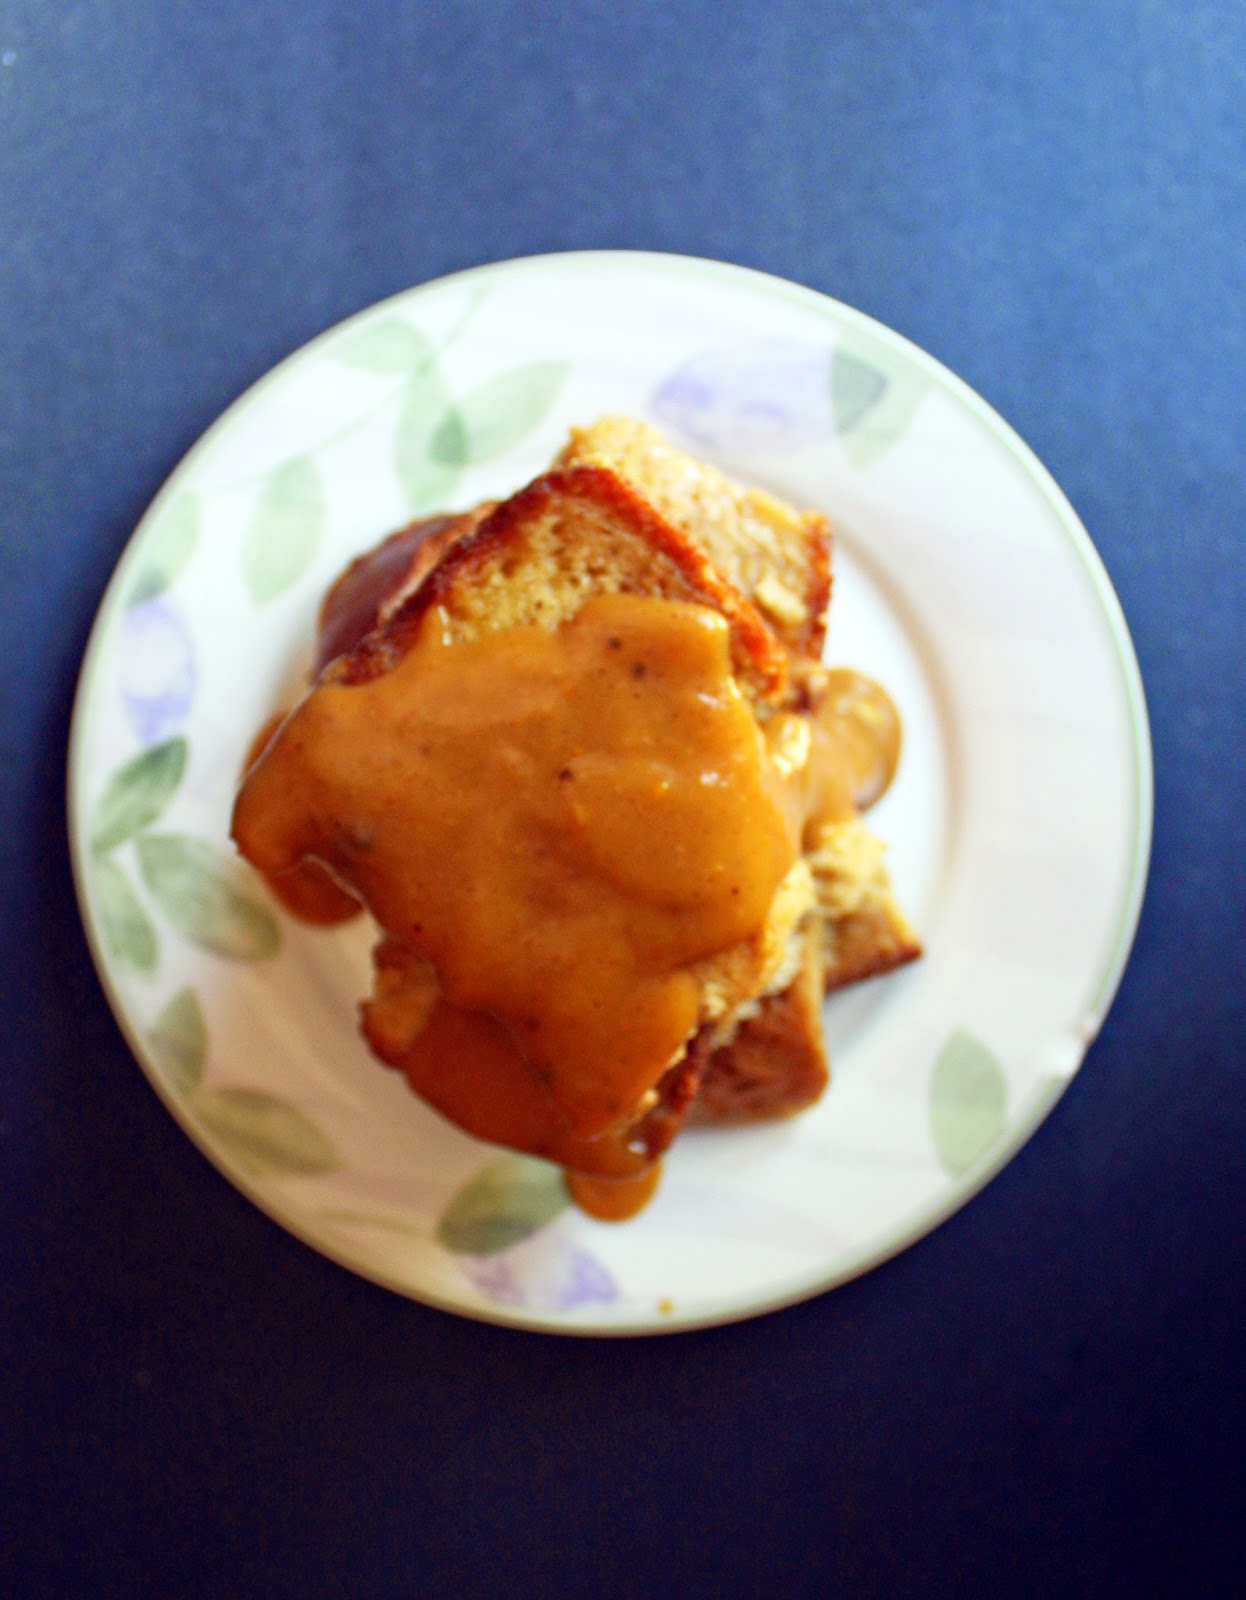 vegan pumpkin french toast stuffed with pumpkin pie filling